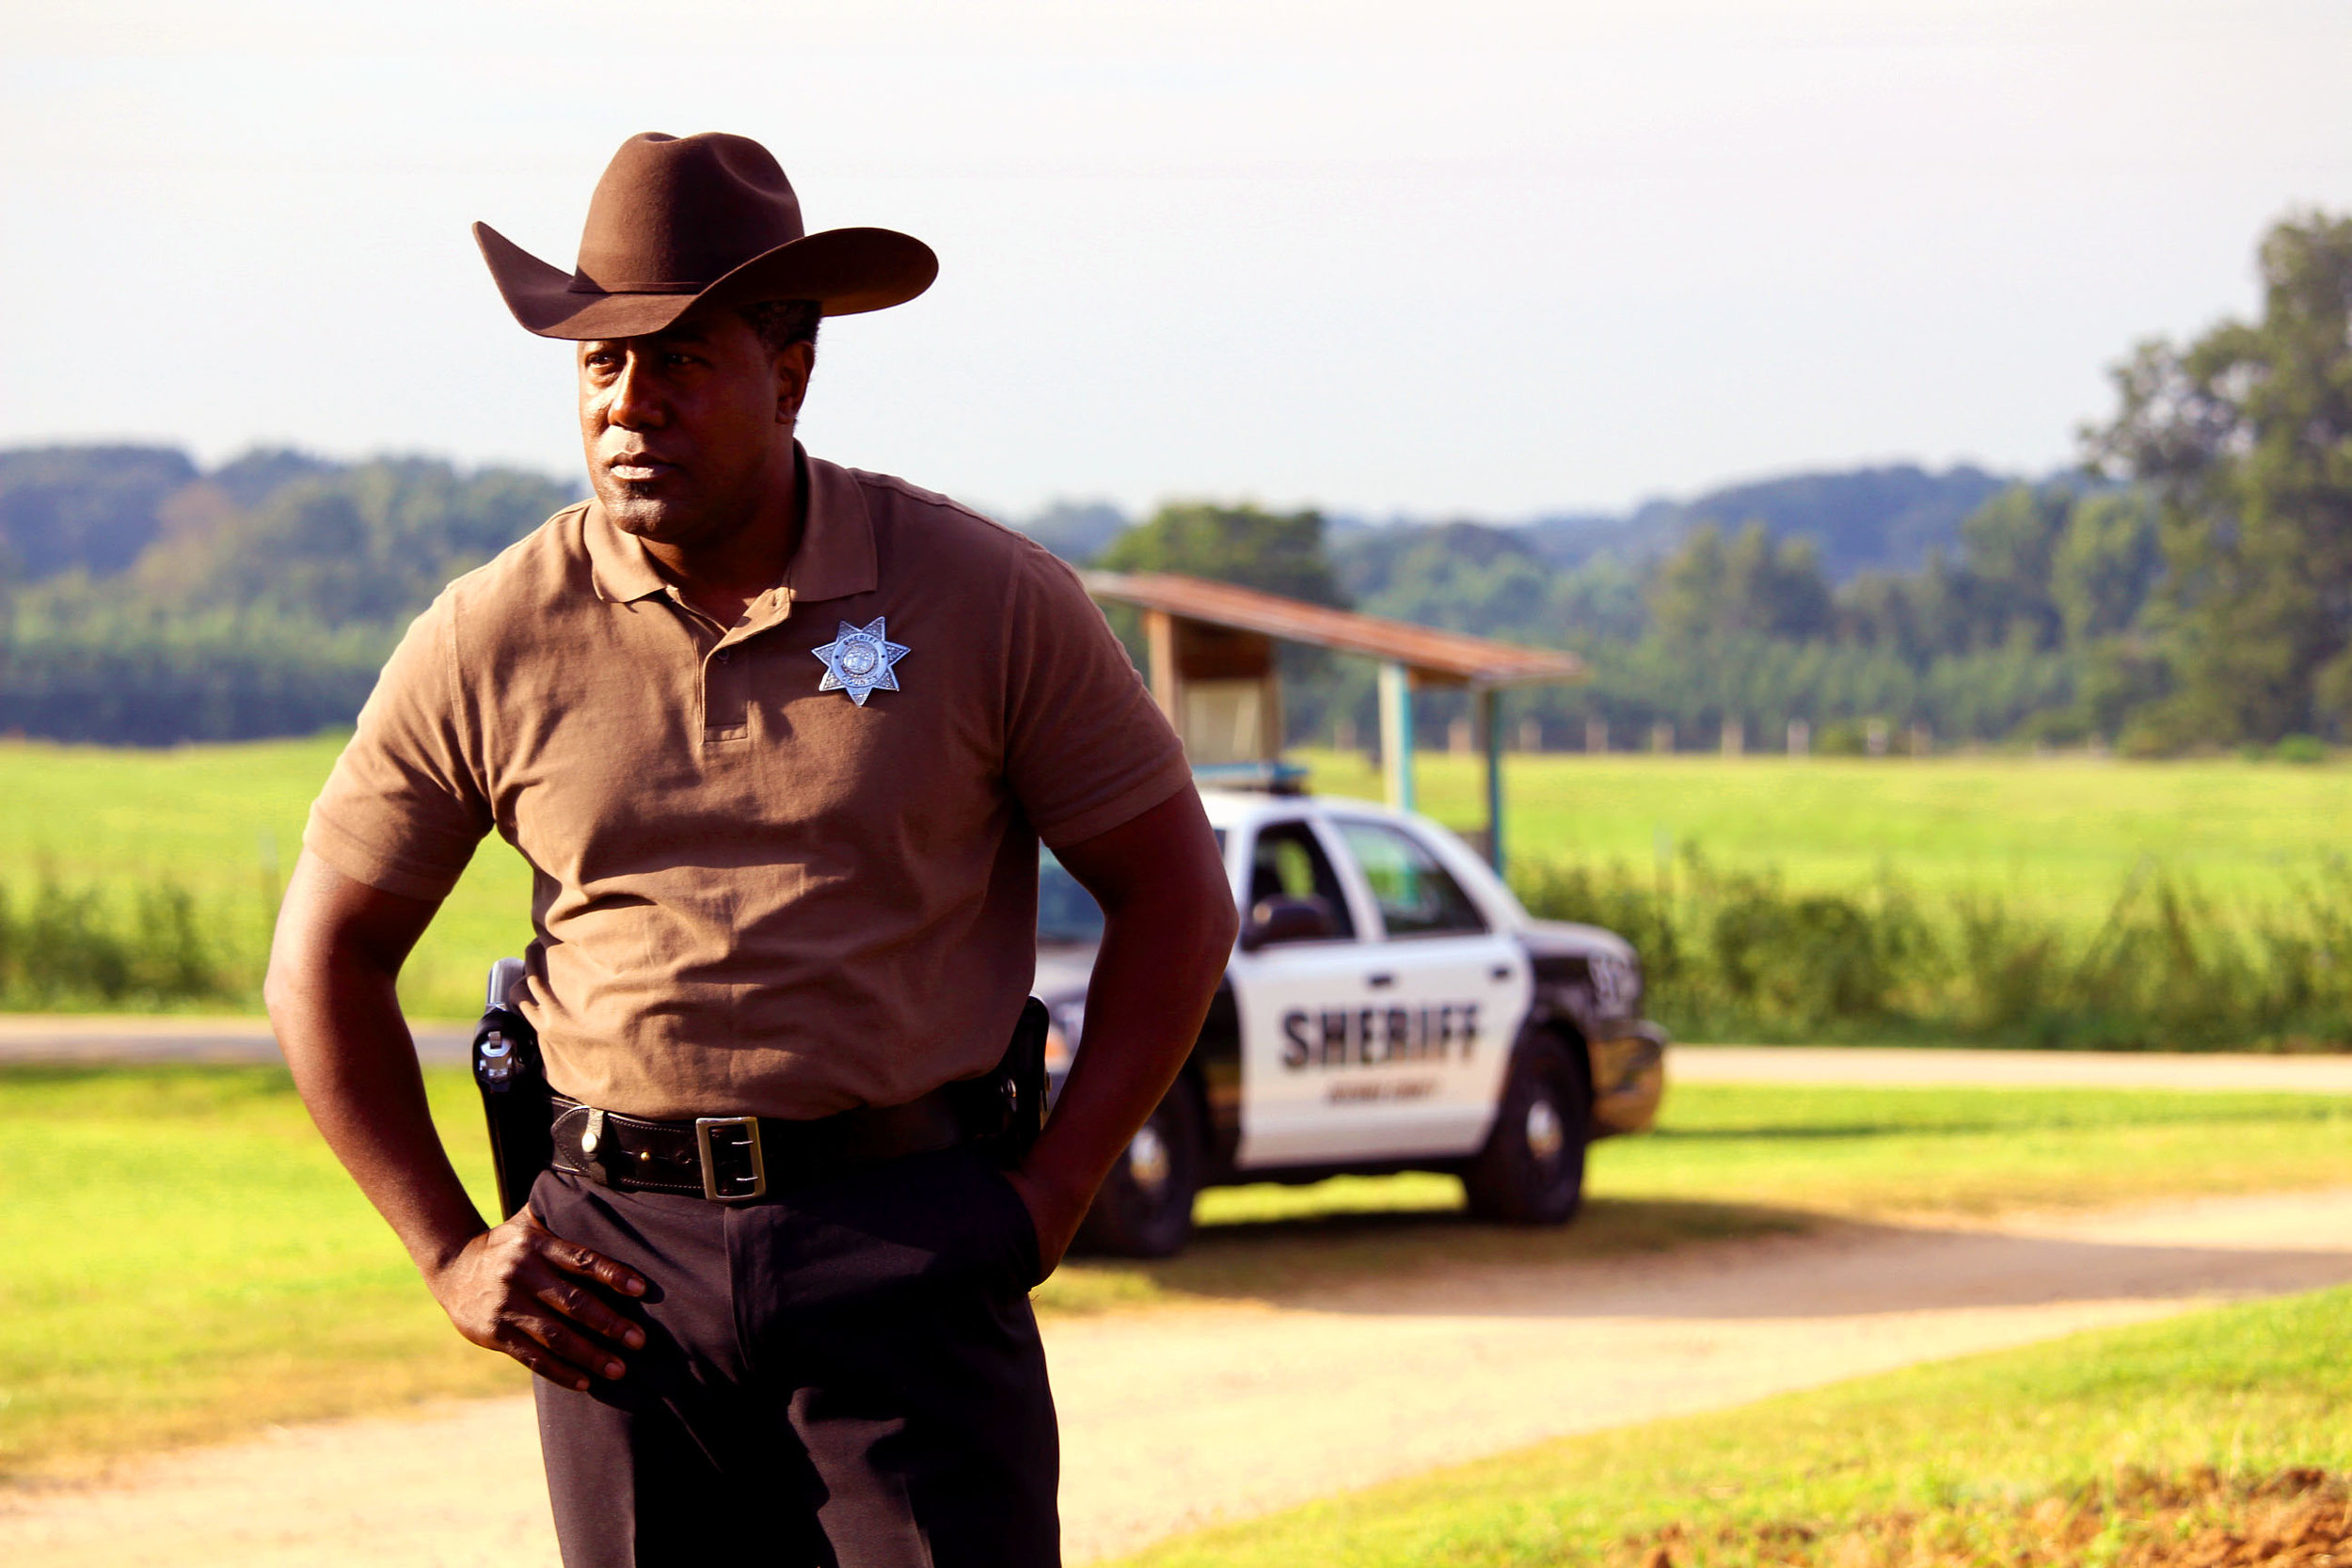 Brilliant actor E. Roger Mitchell - American Made - The Quad superbly plays the experienced Sheriff Darden in this years most influential film Full Count